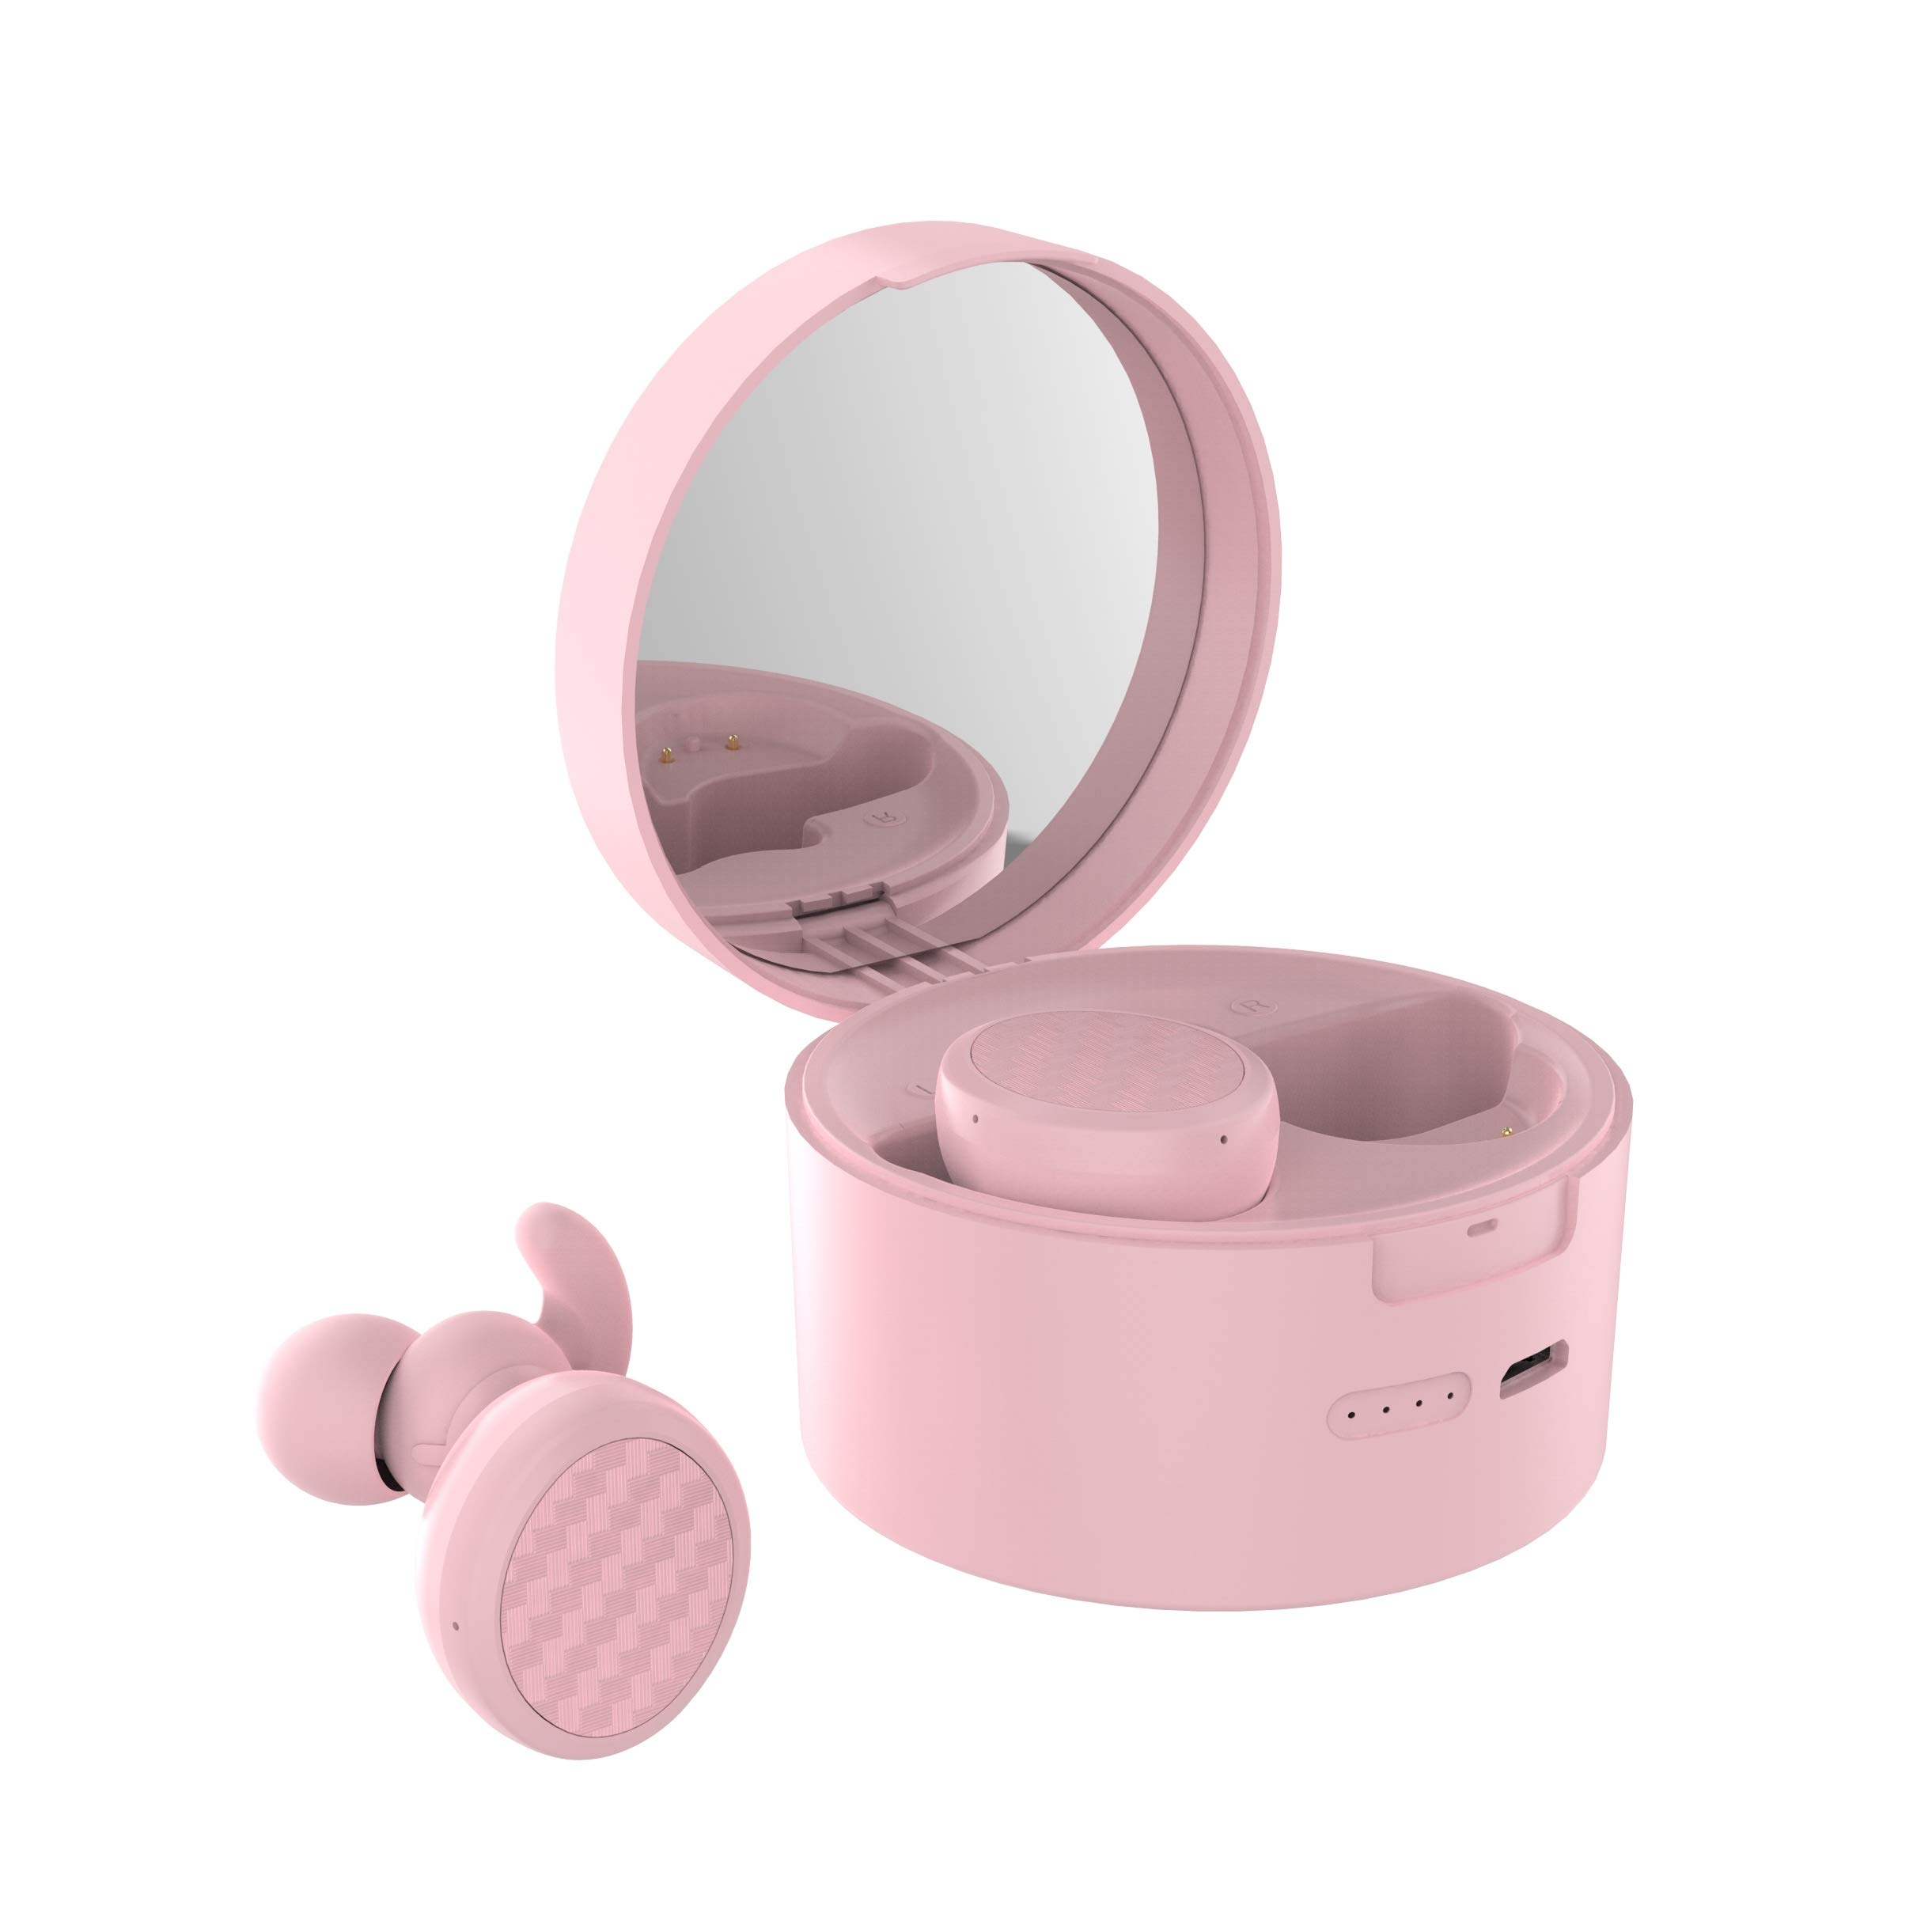 Auriculares Earbuds Inalambricos MR. ELEVEN Pink